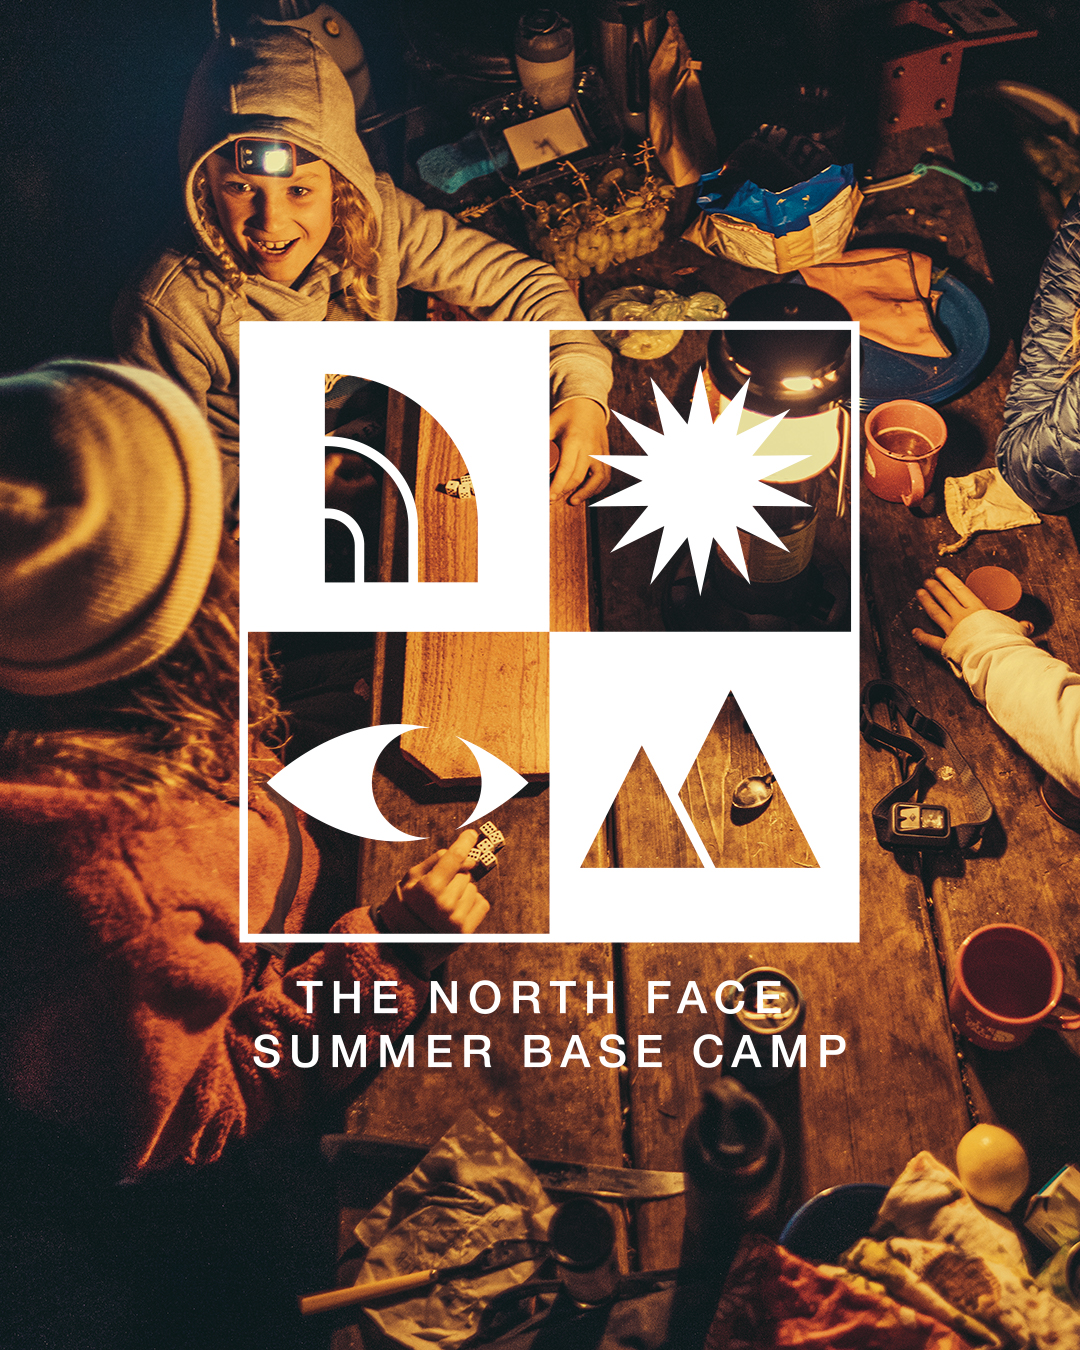 The North Face is getting children back to camp virtually.